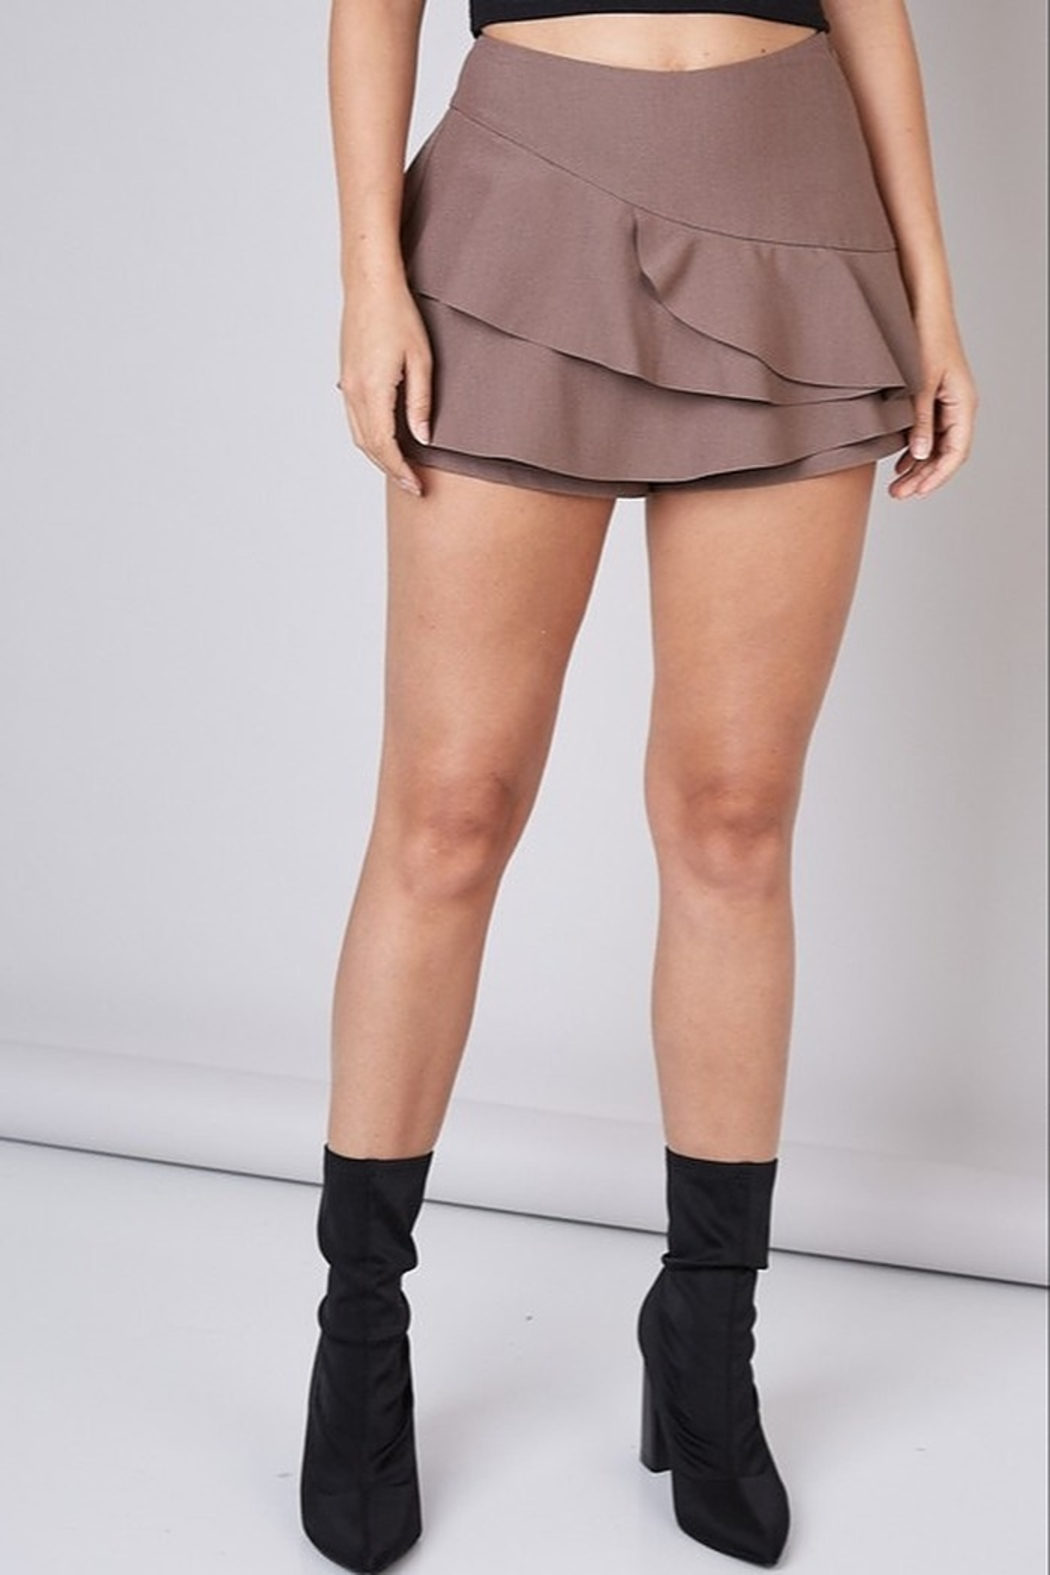 Do & Be Layered Ruffle Short - Front Cropped Image